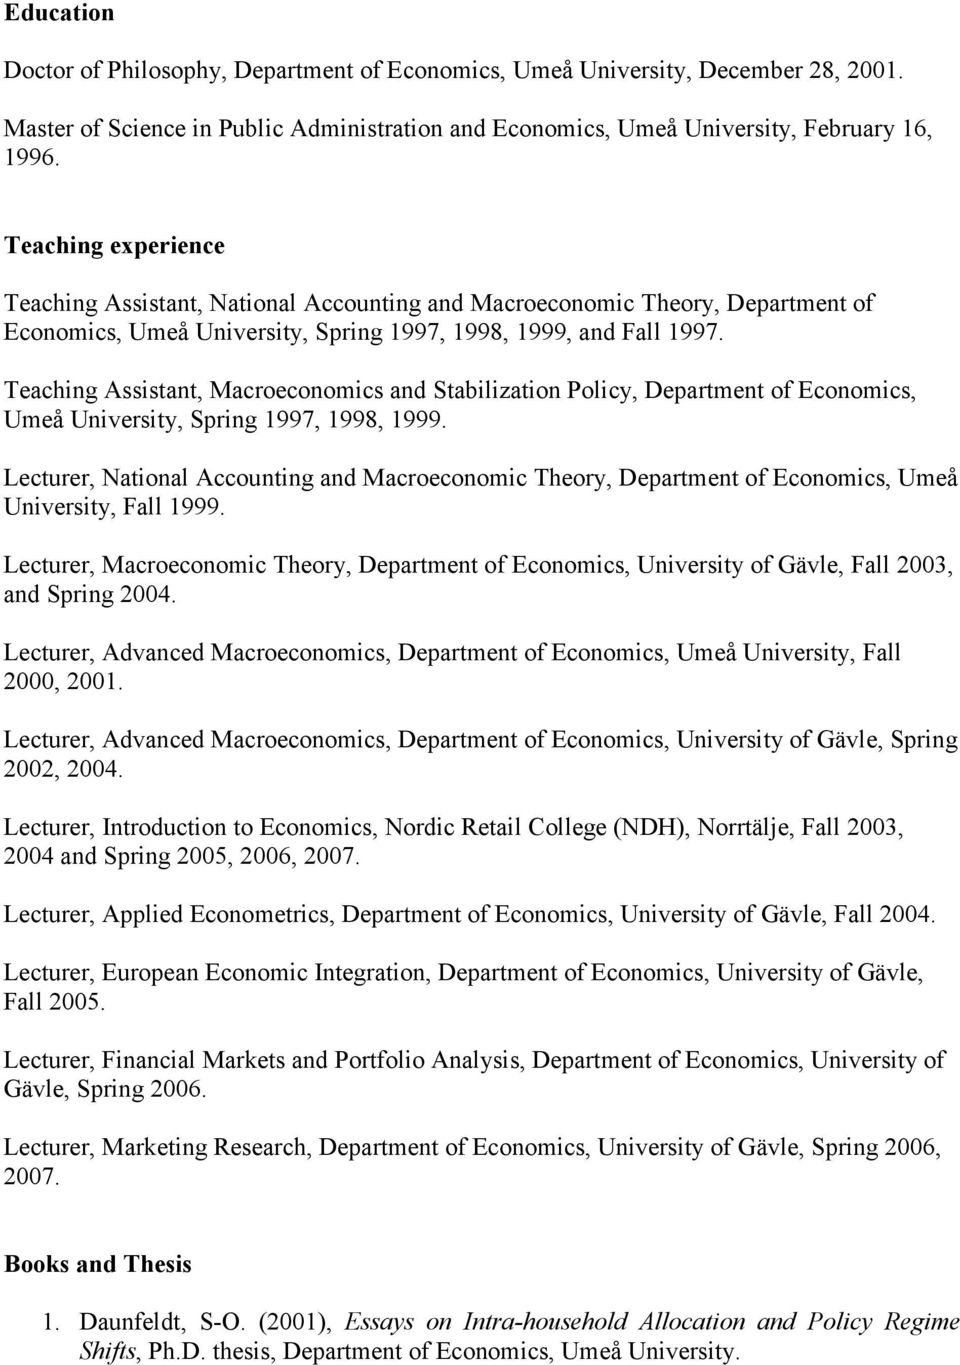 Teaching Assistant, Macroeconomics and Stabilization Policy, Department of Economics, Umeå University, Spring 1997, 1998, 1999.